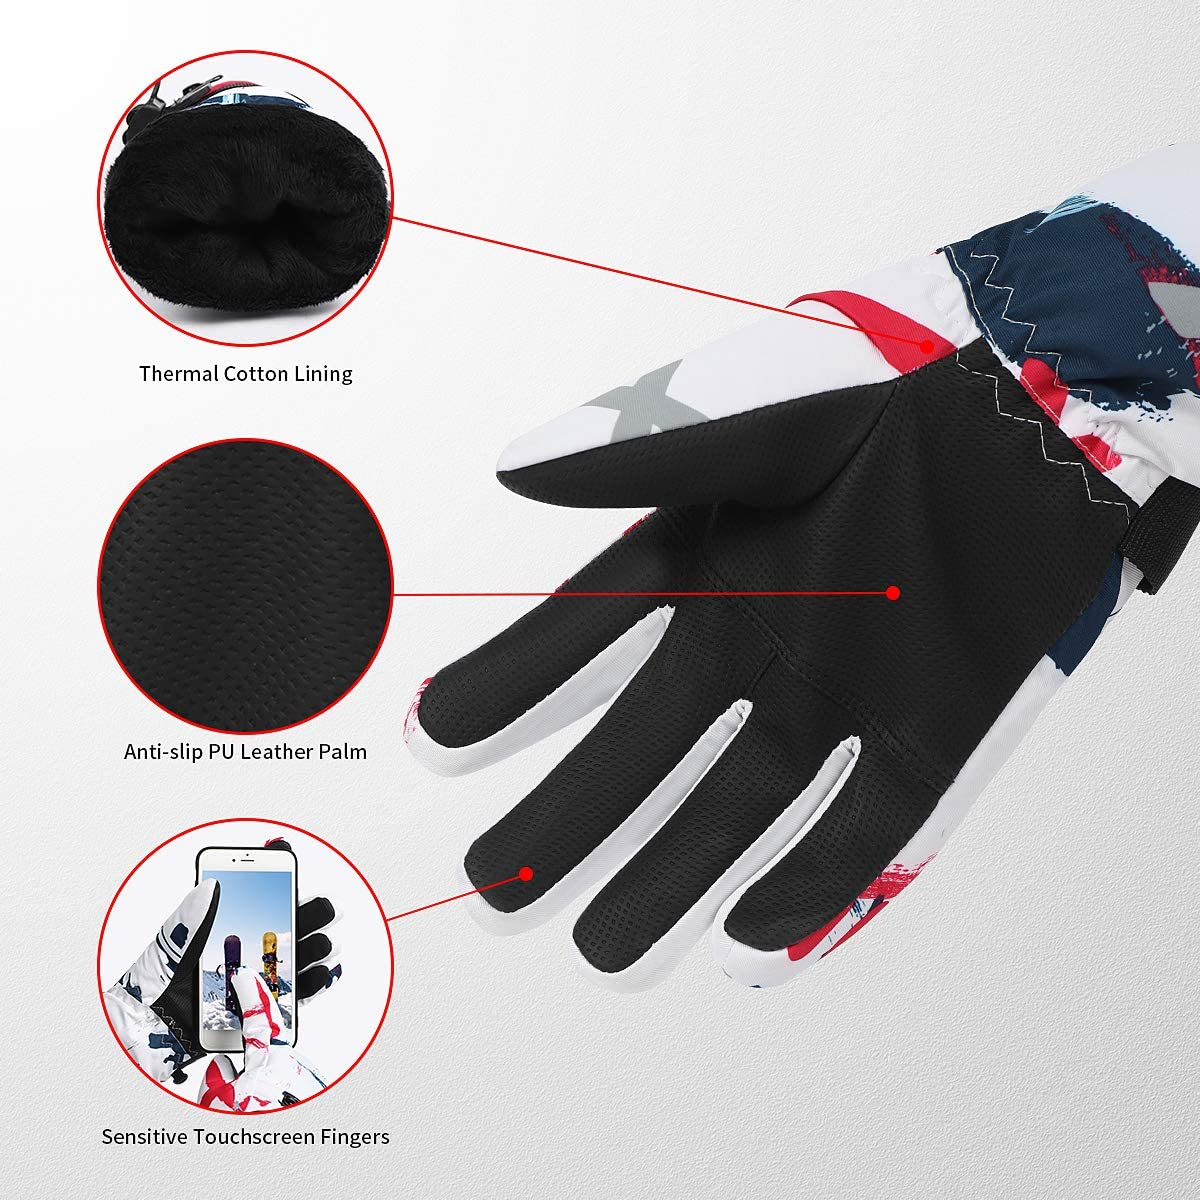 Suneed Ski Gloves Waterproof Winter Gloves Touchscreen Cold Weather Snow Gloves